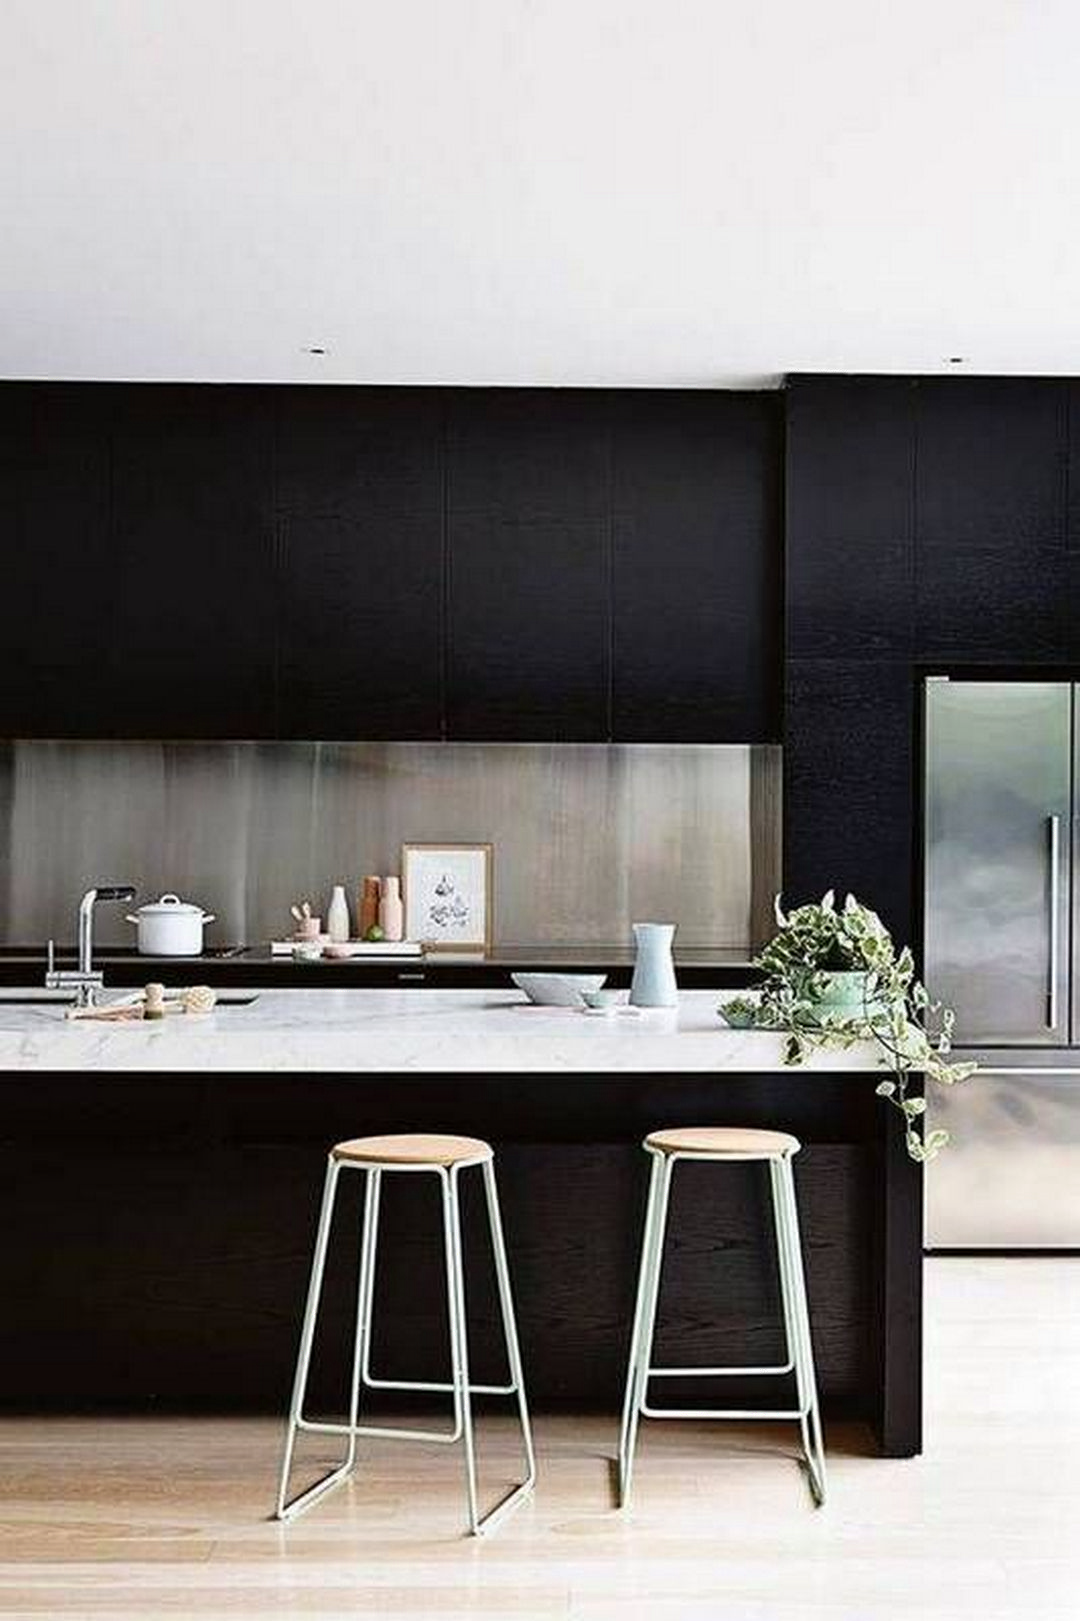 105 Stylish Modern Kitchen Design Ideas | Unique meaning, Wood mode on outdoor roof ideas, garage ideas, living room ideas, wet bar ideas, game room ideas, pergola ideas, outdoor kitchens and grills, garden ideas, fire pit ideas, fireplace ideas, outdoor kitchens on a budget, gazebo ideas, outdoor fridge ideas, pool ideas, backyard ideas, retaining walls ideas, outdoor fireplaces, outdoor pool, outdoor design ideas, outdoor baby ideas,